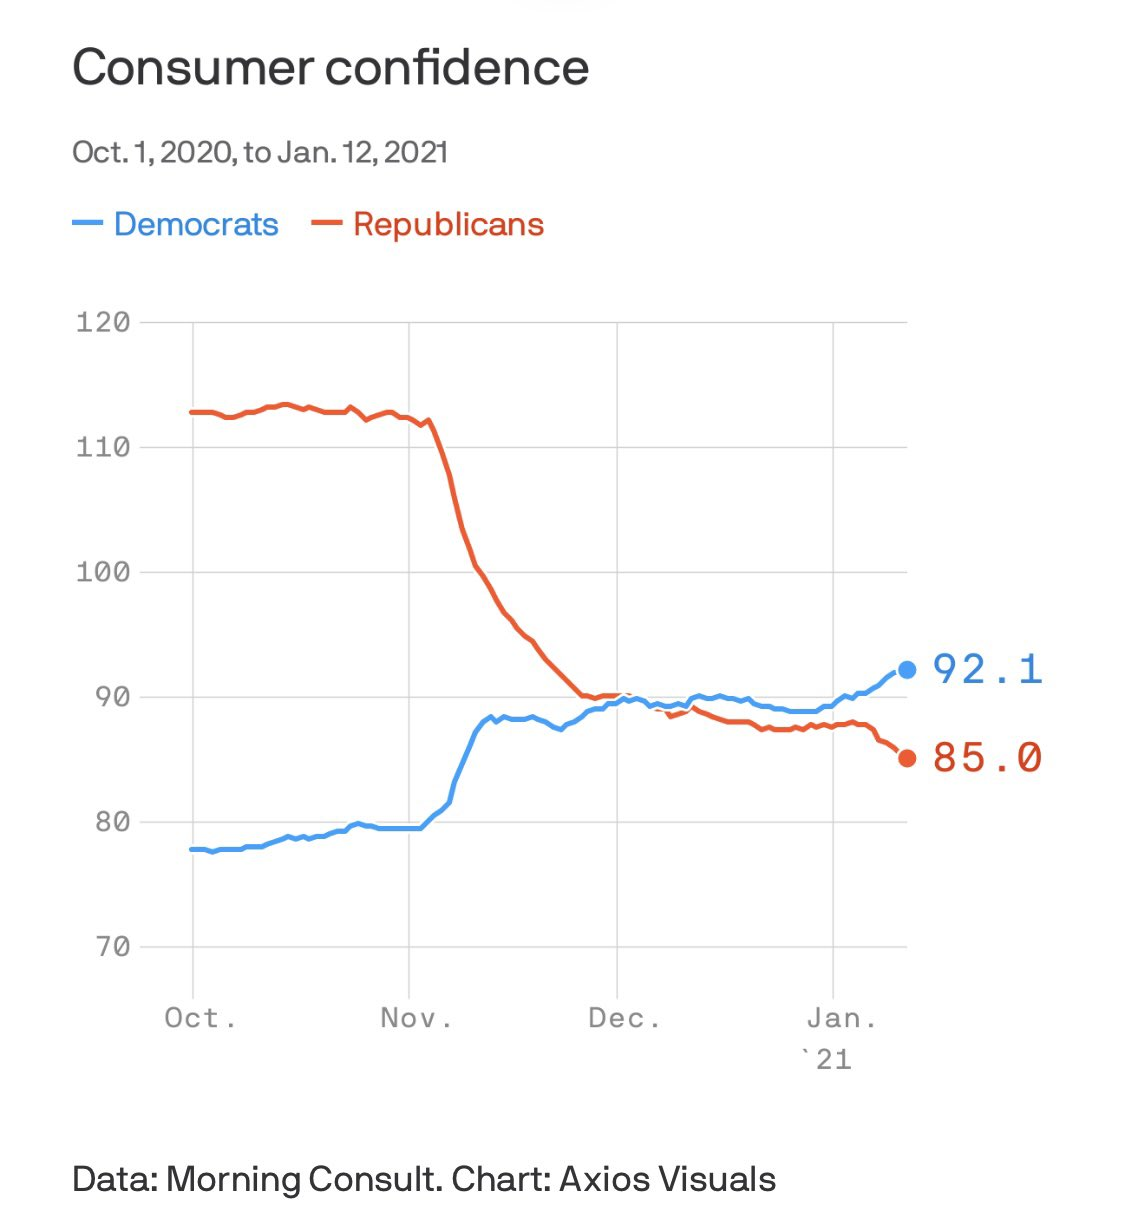 Post-election blues hitting US consumer confidence